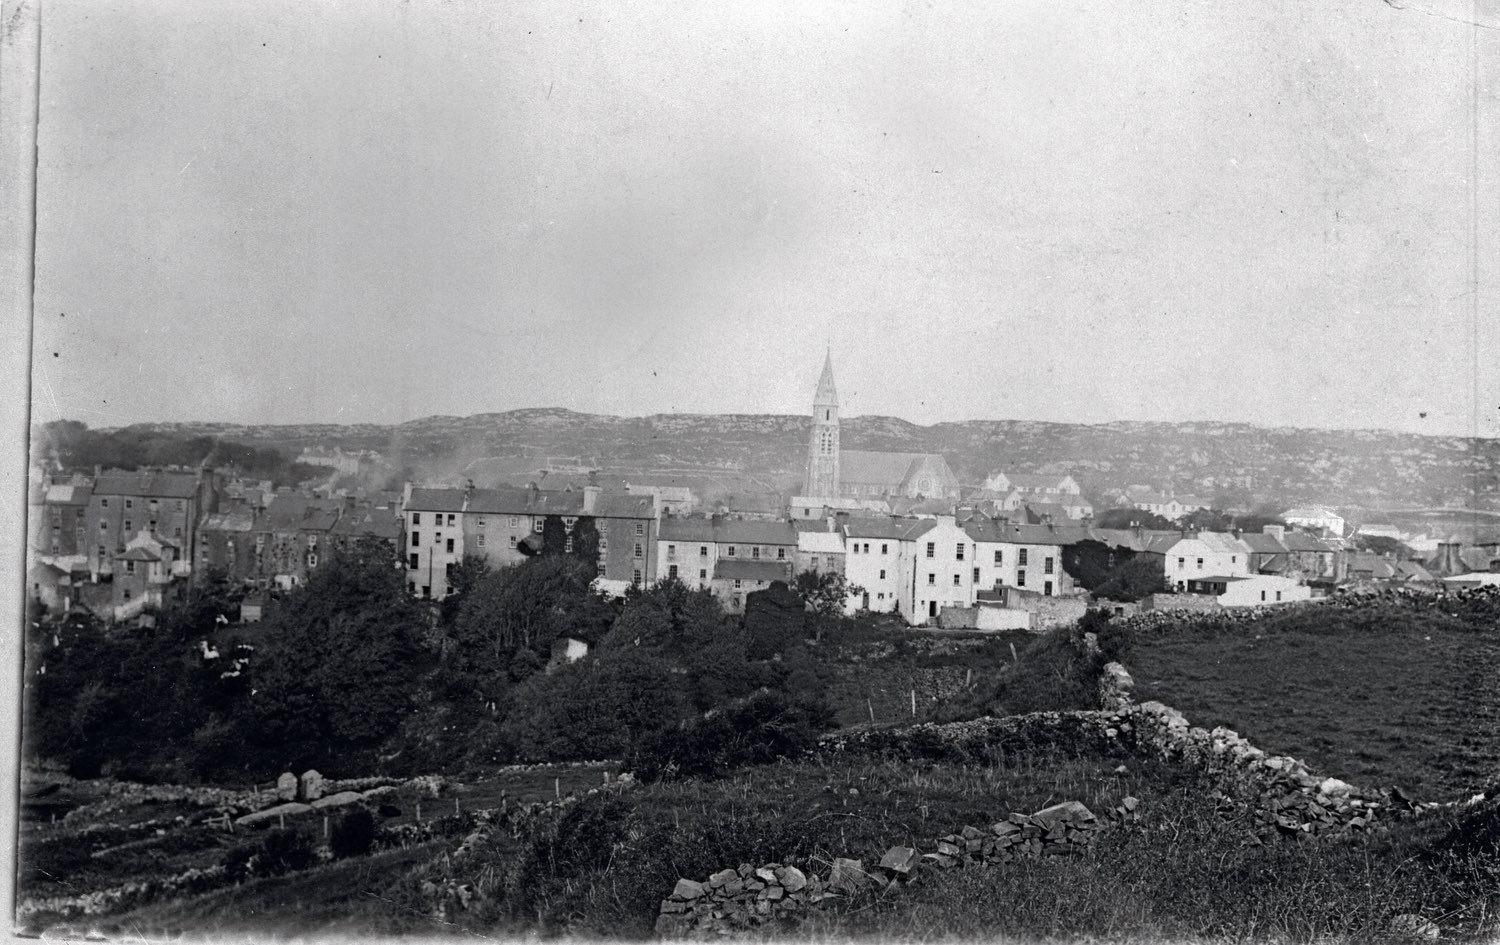 The Marconi Company brought welcome employment and excitement to the town of Clifden. At the time, Clifden's population was 900.